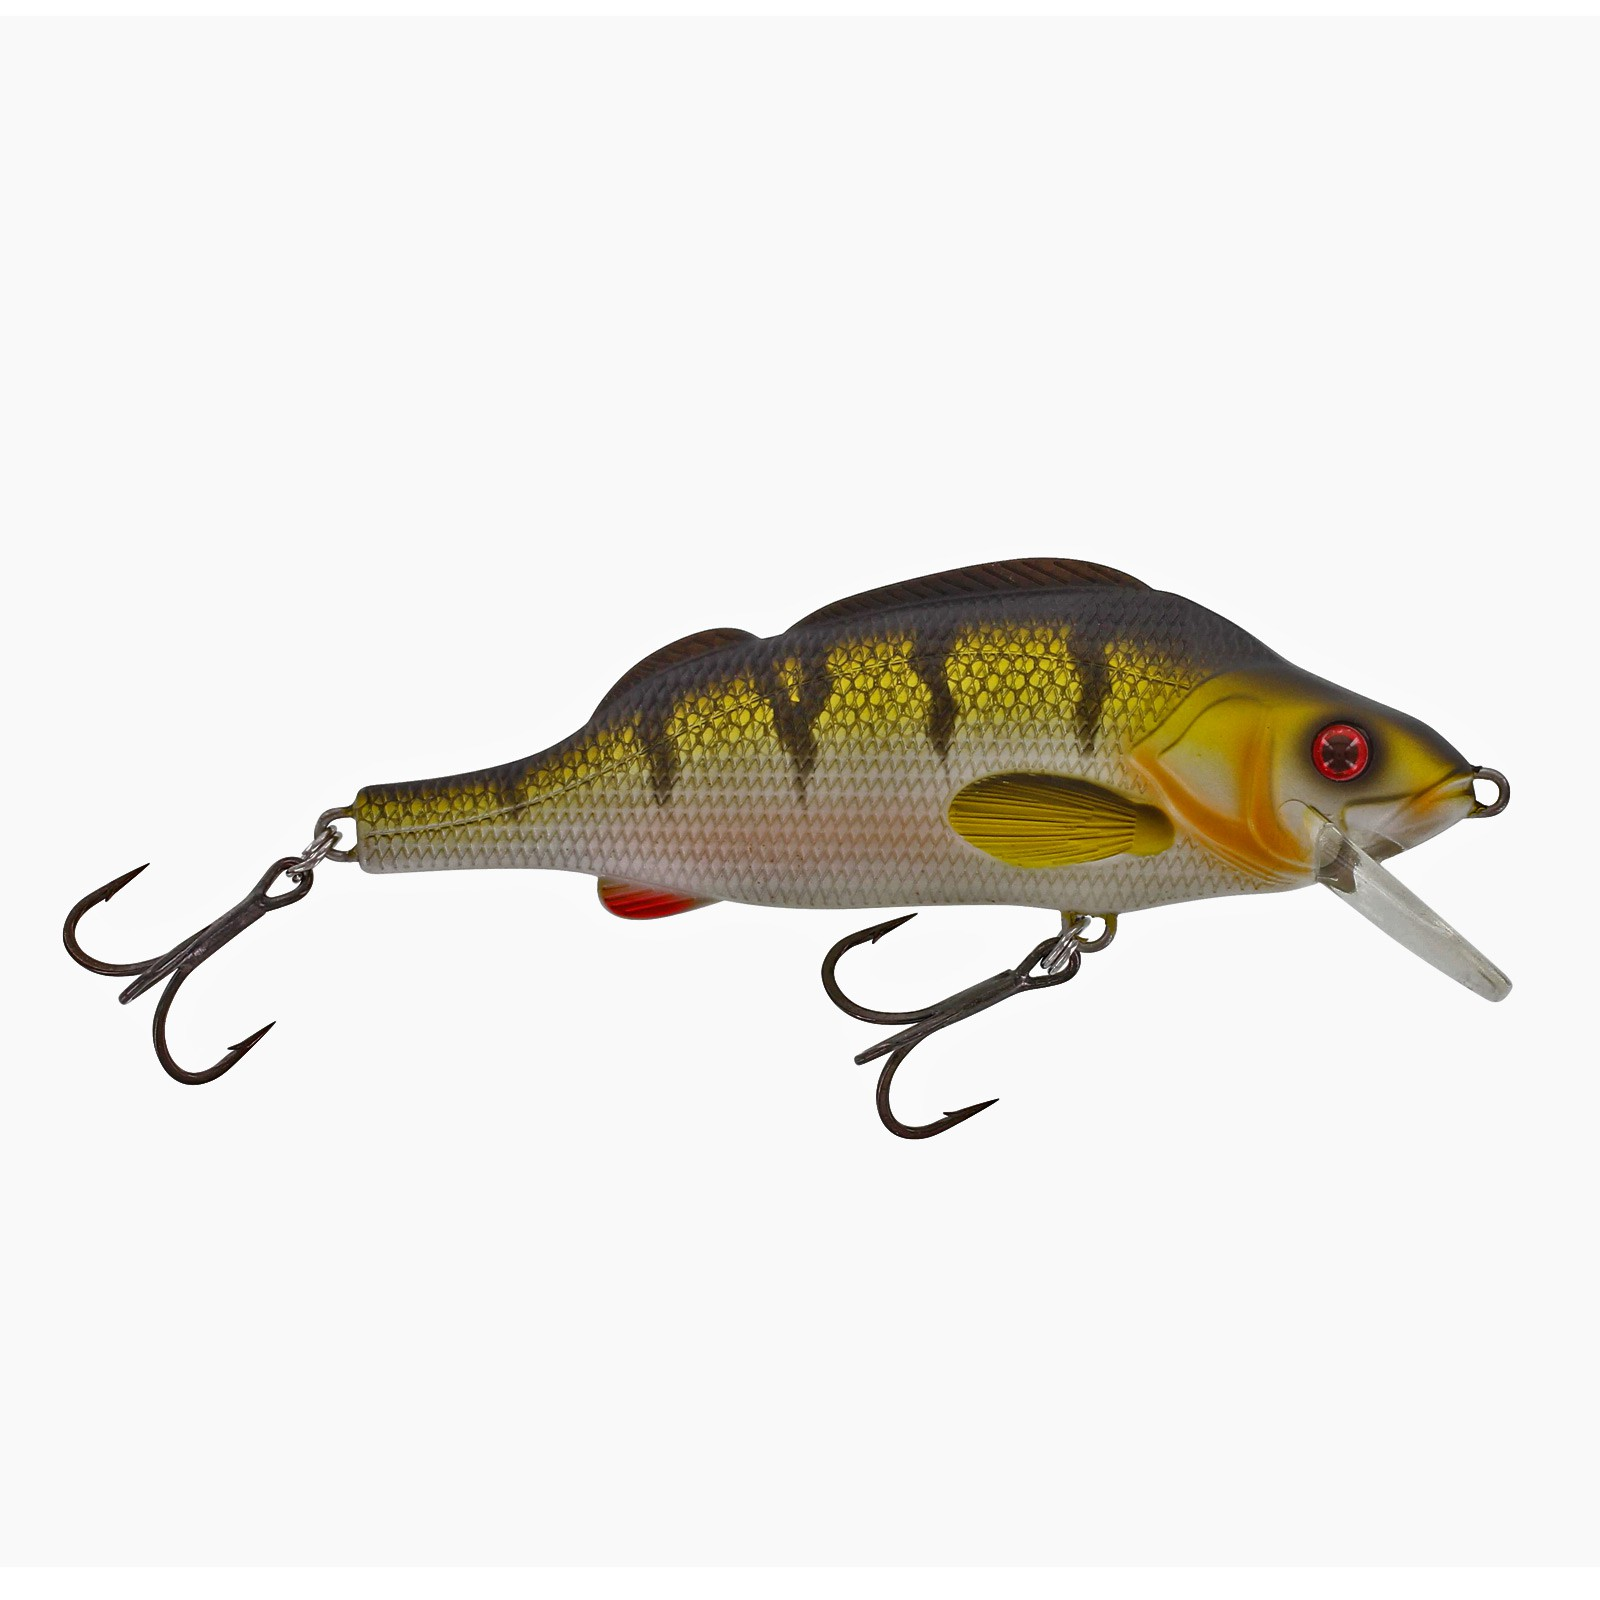 Westin percy the perch hard lure glasgow angling centre for Perch fishing lures